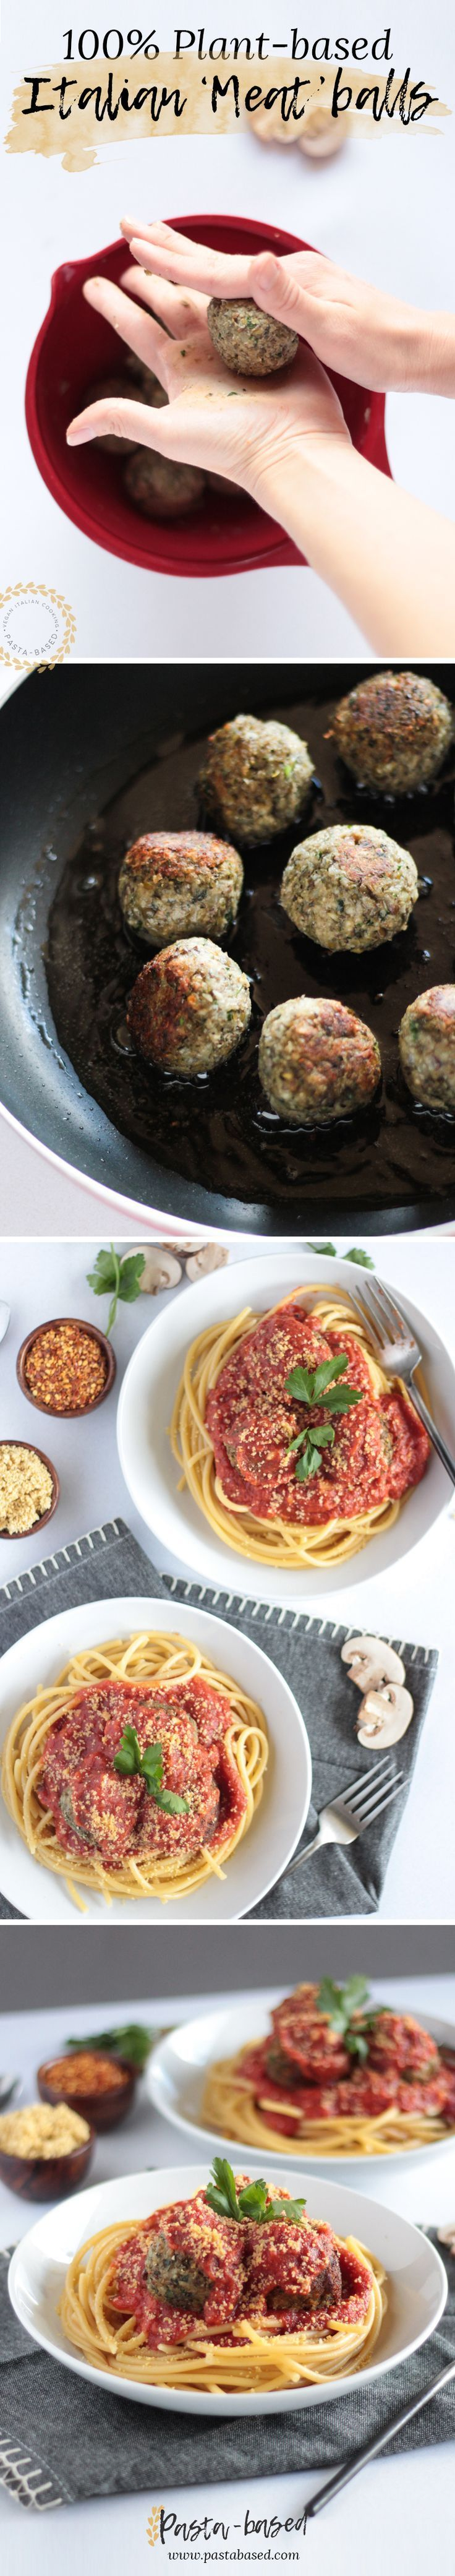 Spaghetti and vegan meatballs • A traditional Italian dish made from plant-based ingredients